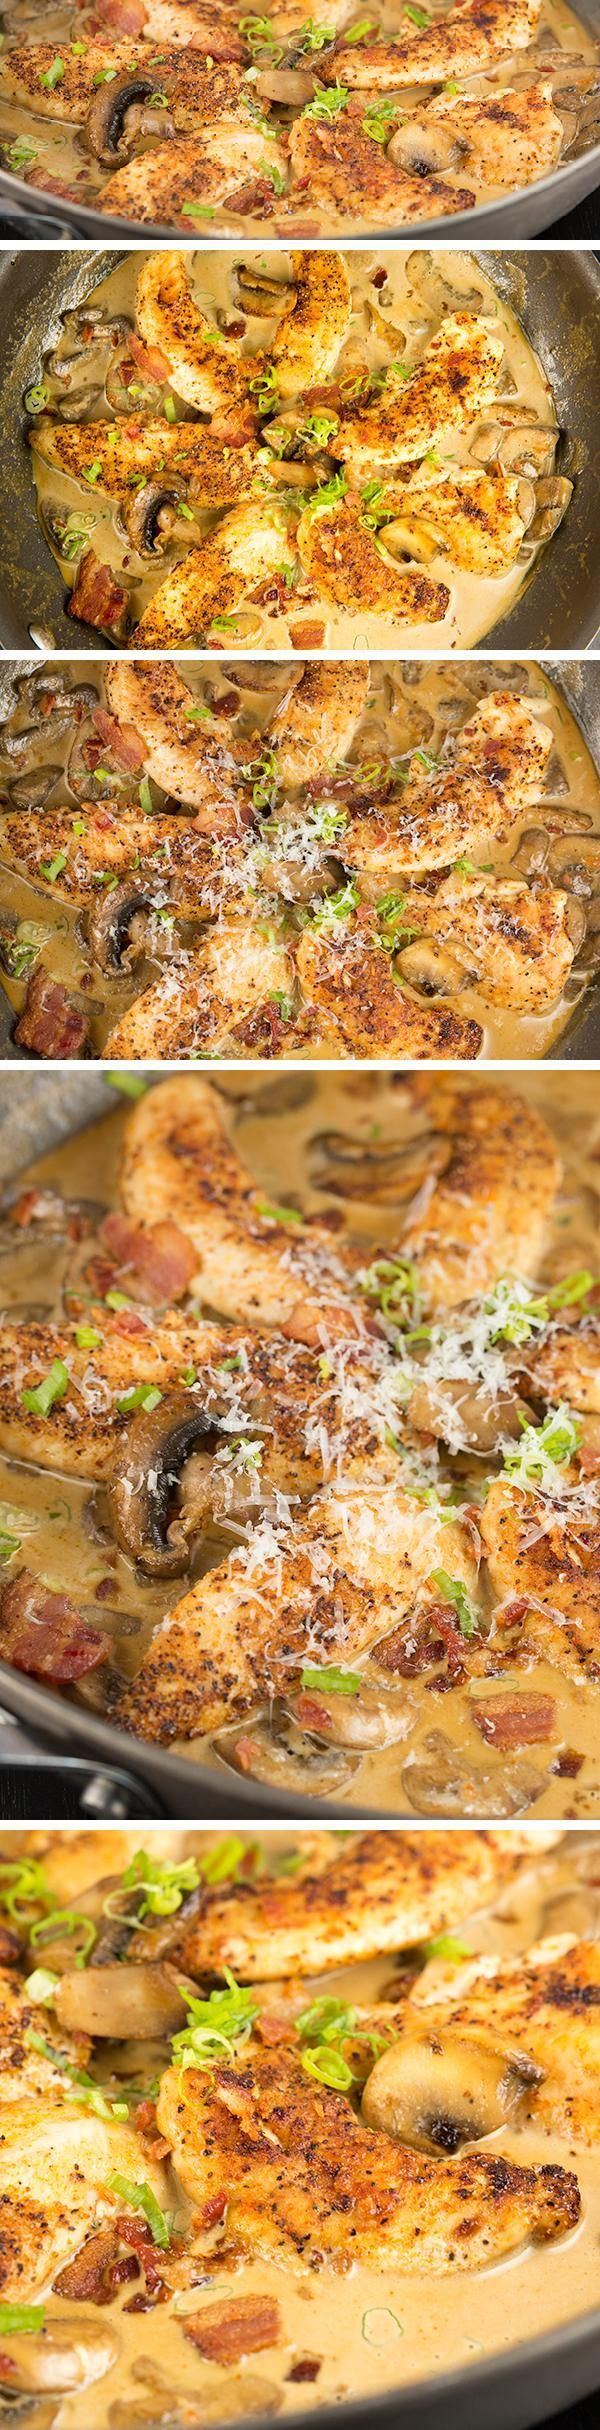 ONE SKILLET CHICKEN BACON and MUSHROOMS in PARMESAN CREAM SAUCE is loaded with flavor. It's ready in under 30 minutes making it an easy go-to recipe. Say hello to your new favorite skillet chicken dinner! (Keto / low carb friendly)